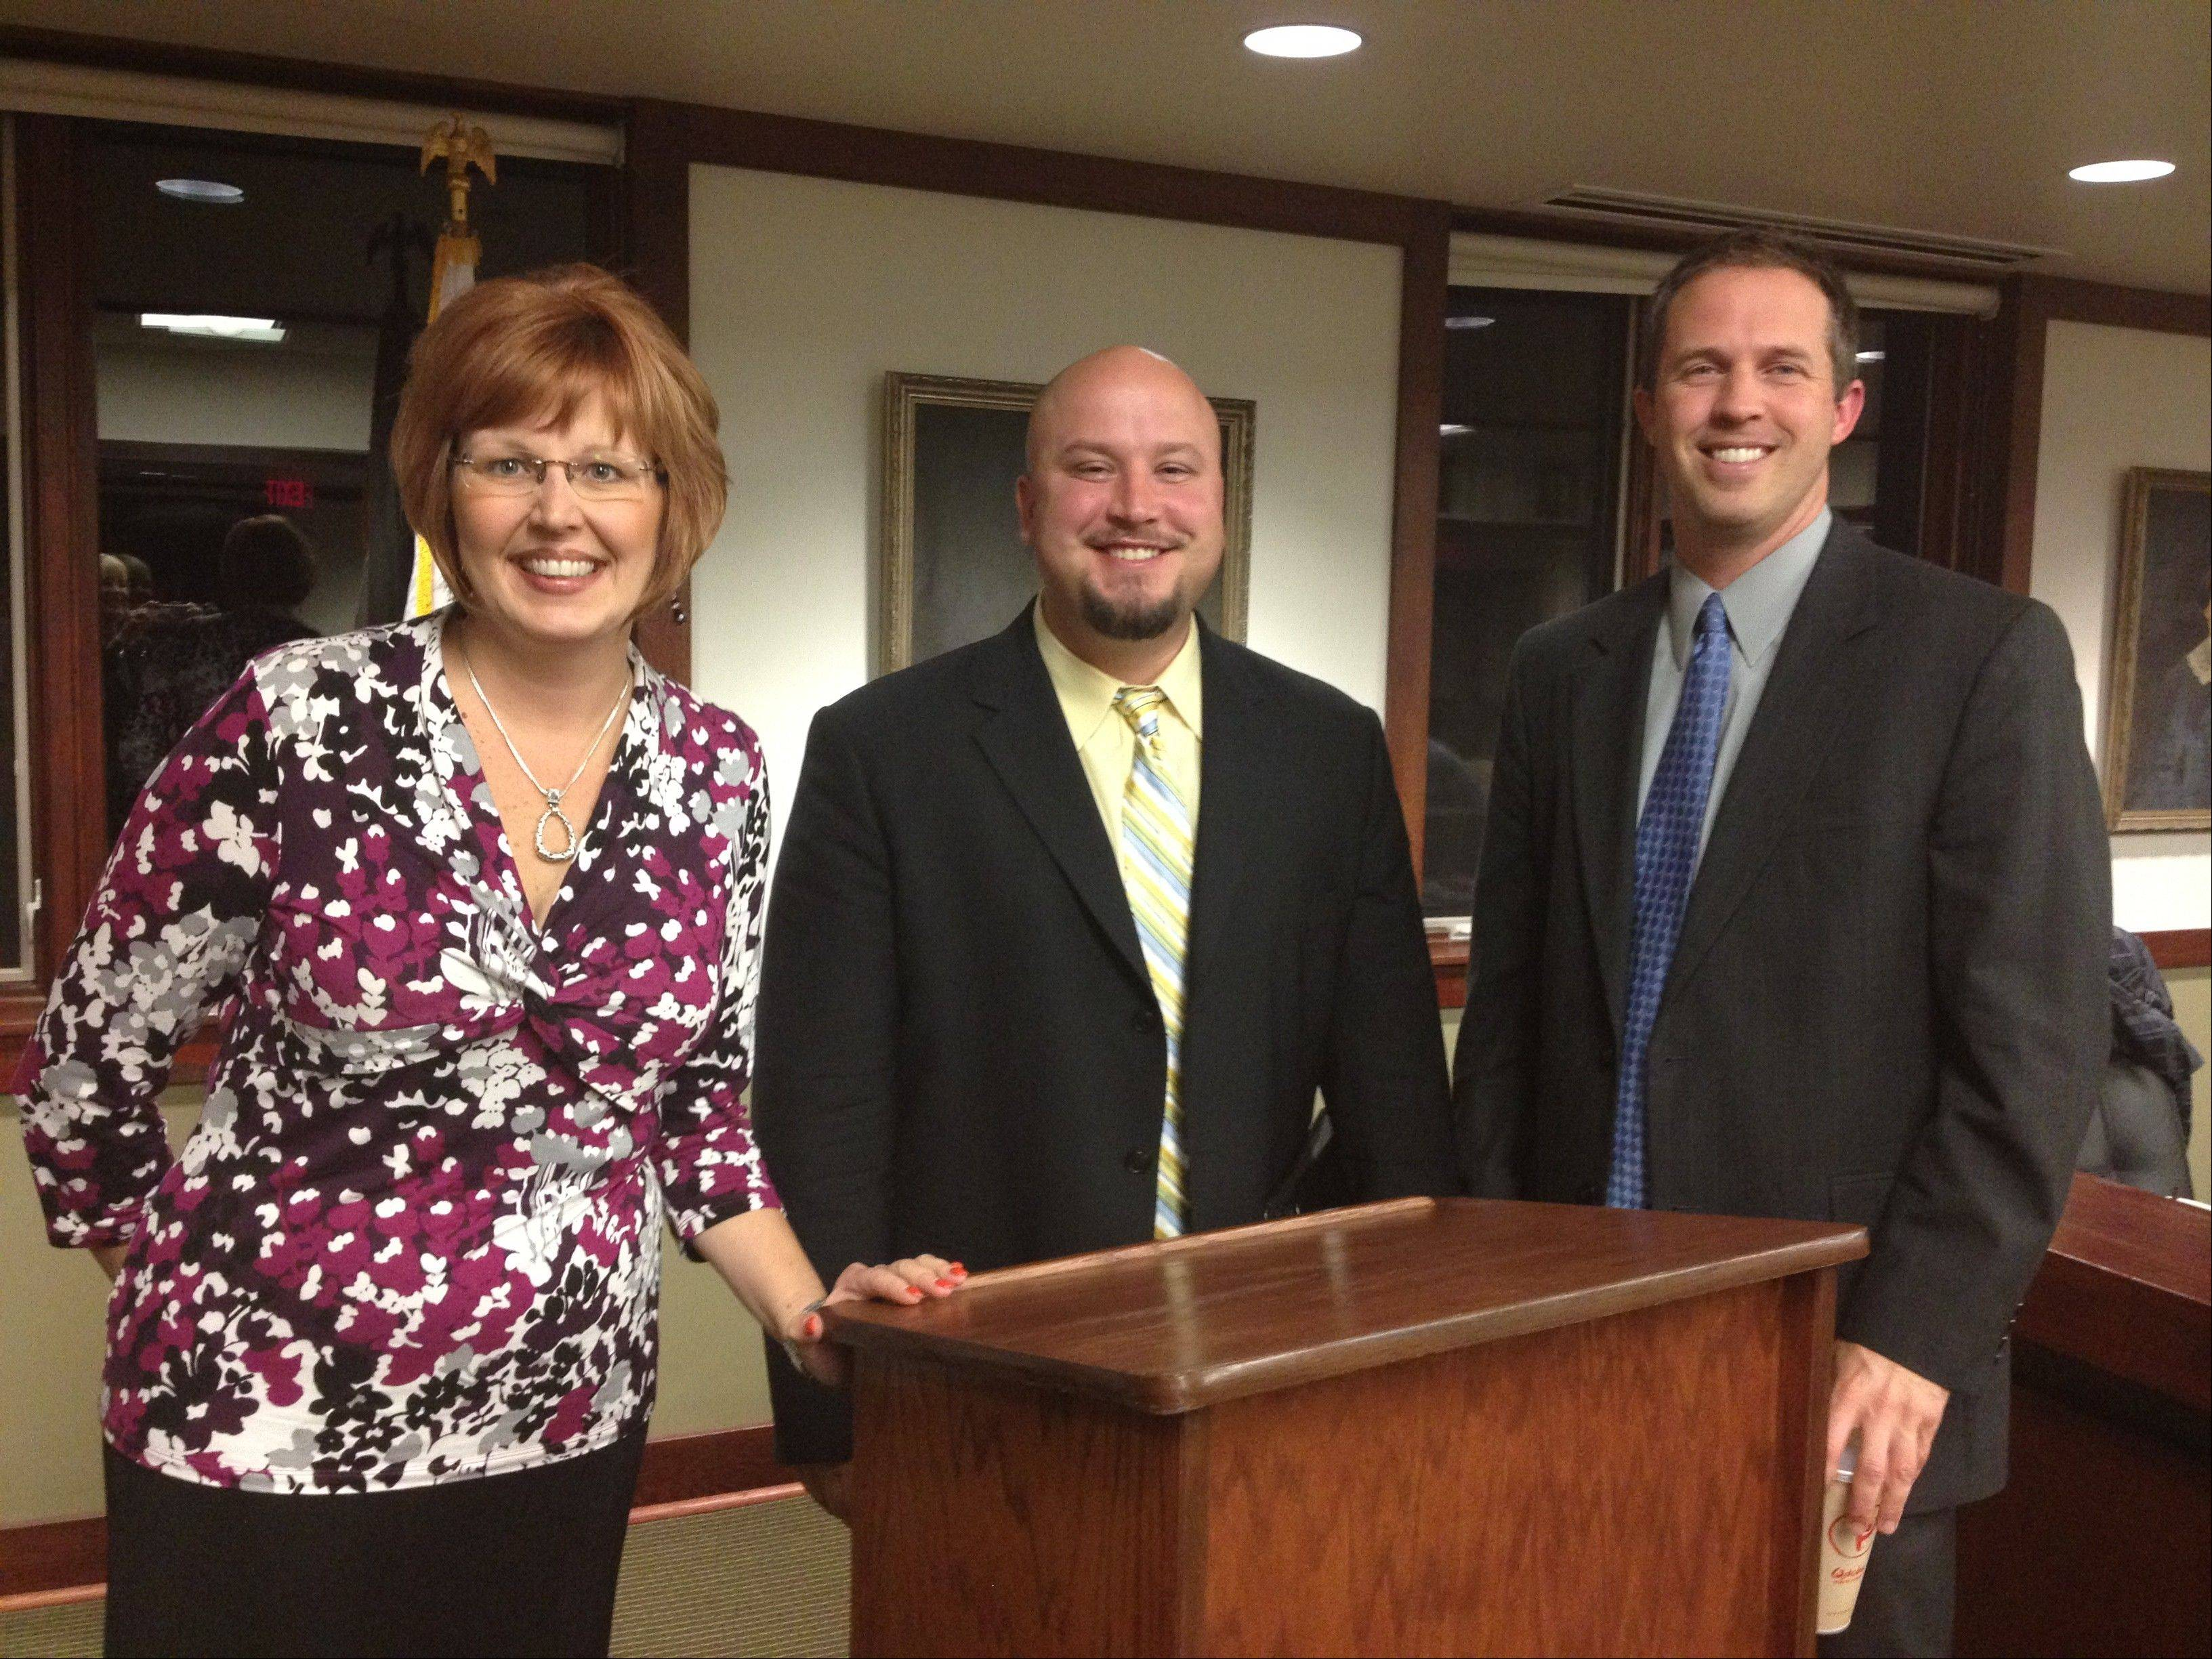 Brian Faulkner, center, will be the new principal at F.E. Peacock Middle School in Itasca.